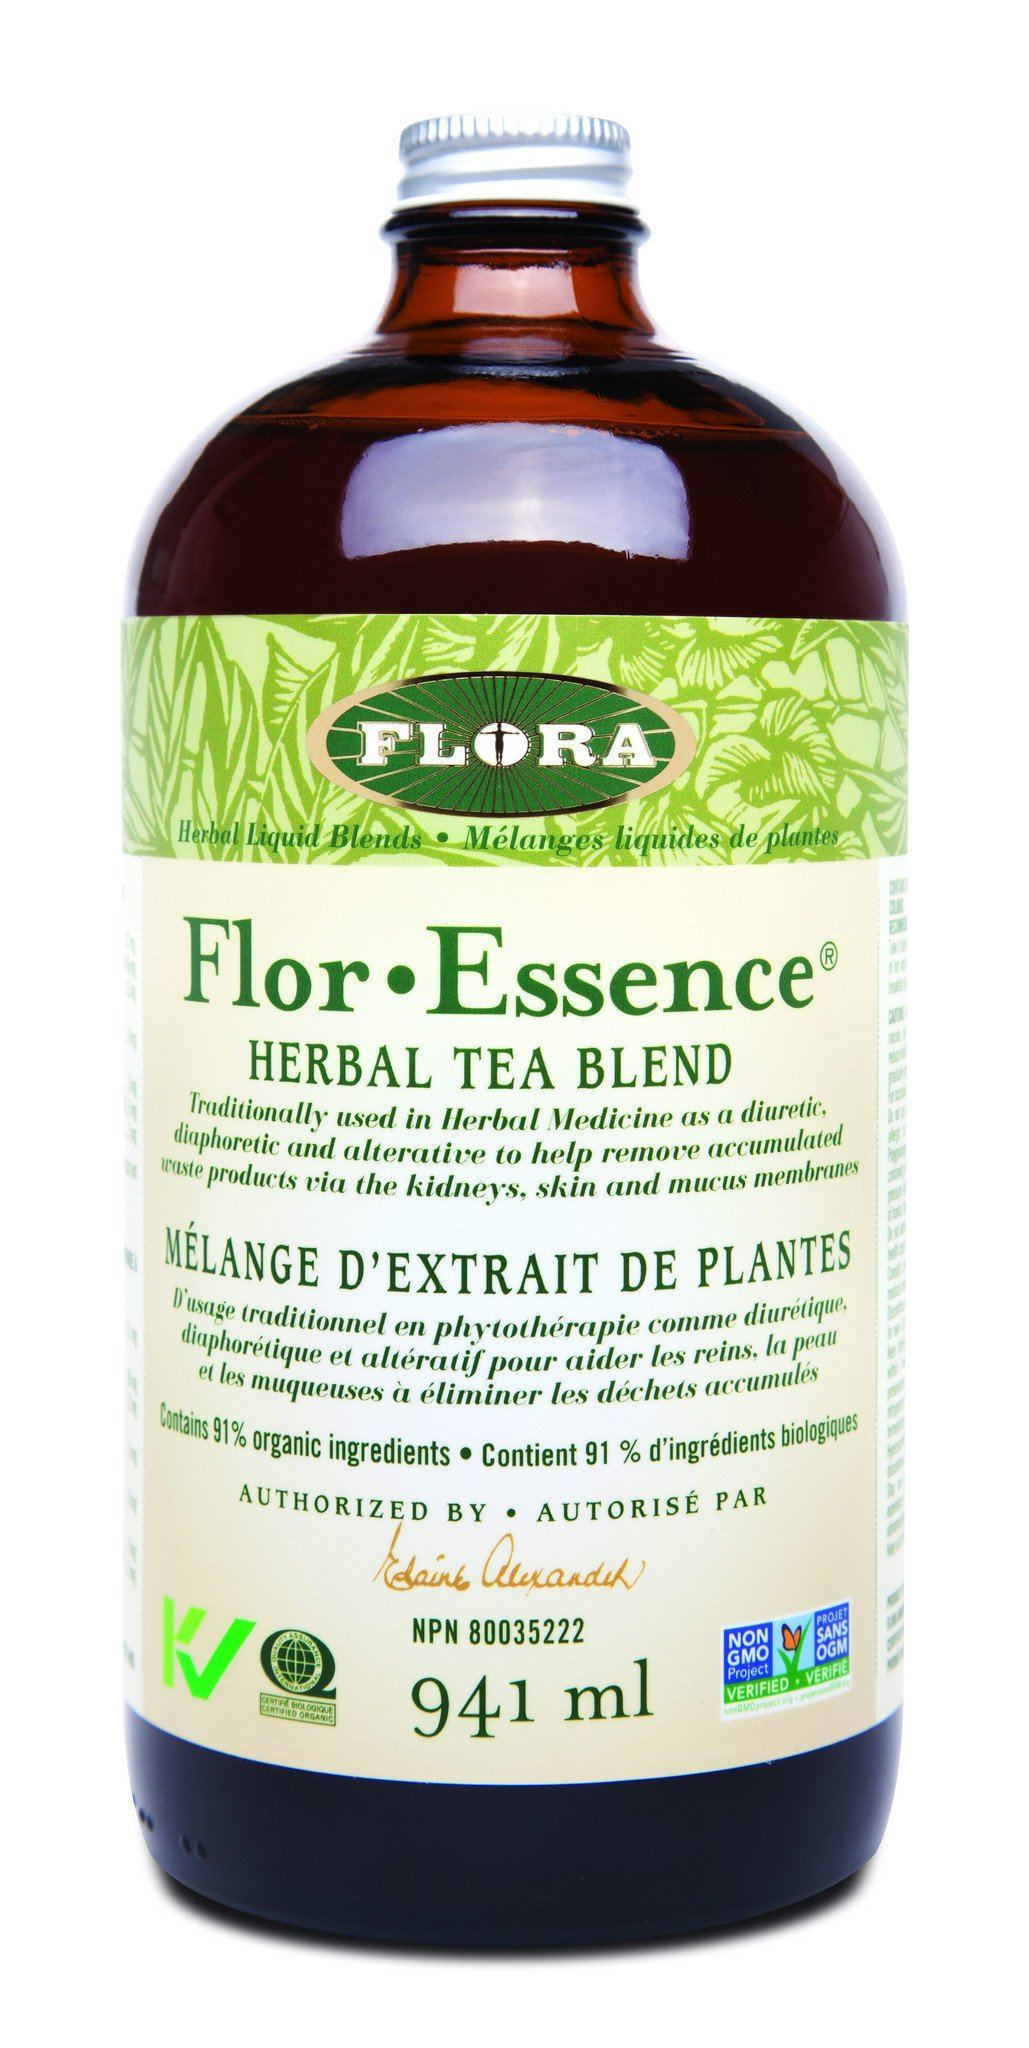 Supplements & Vitamins - Flora - Flor-Essence Herbal Tea, 941ml